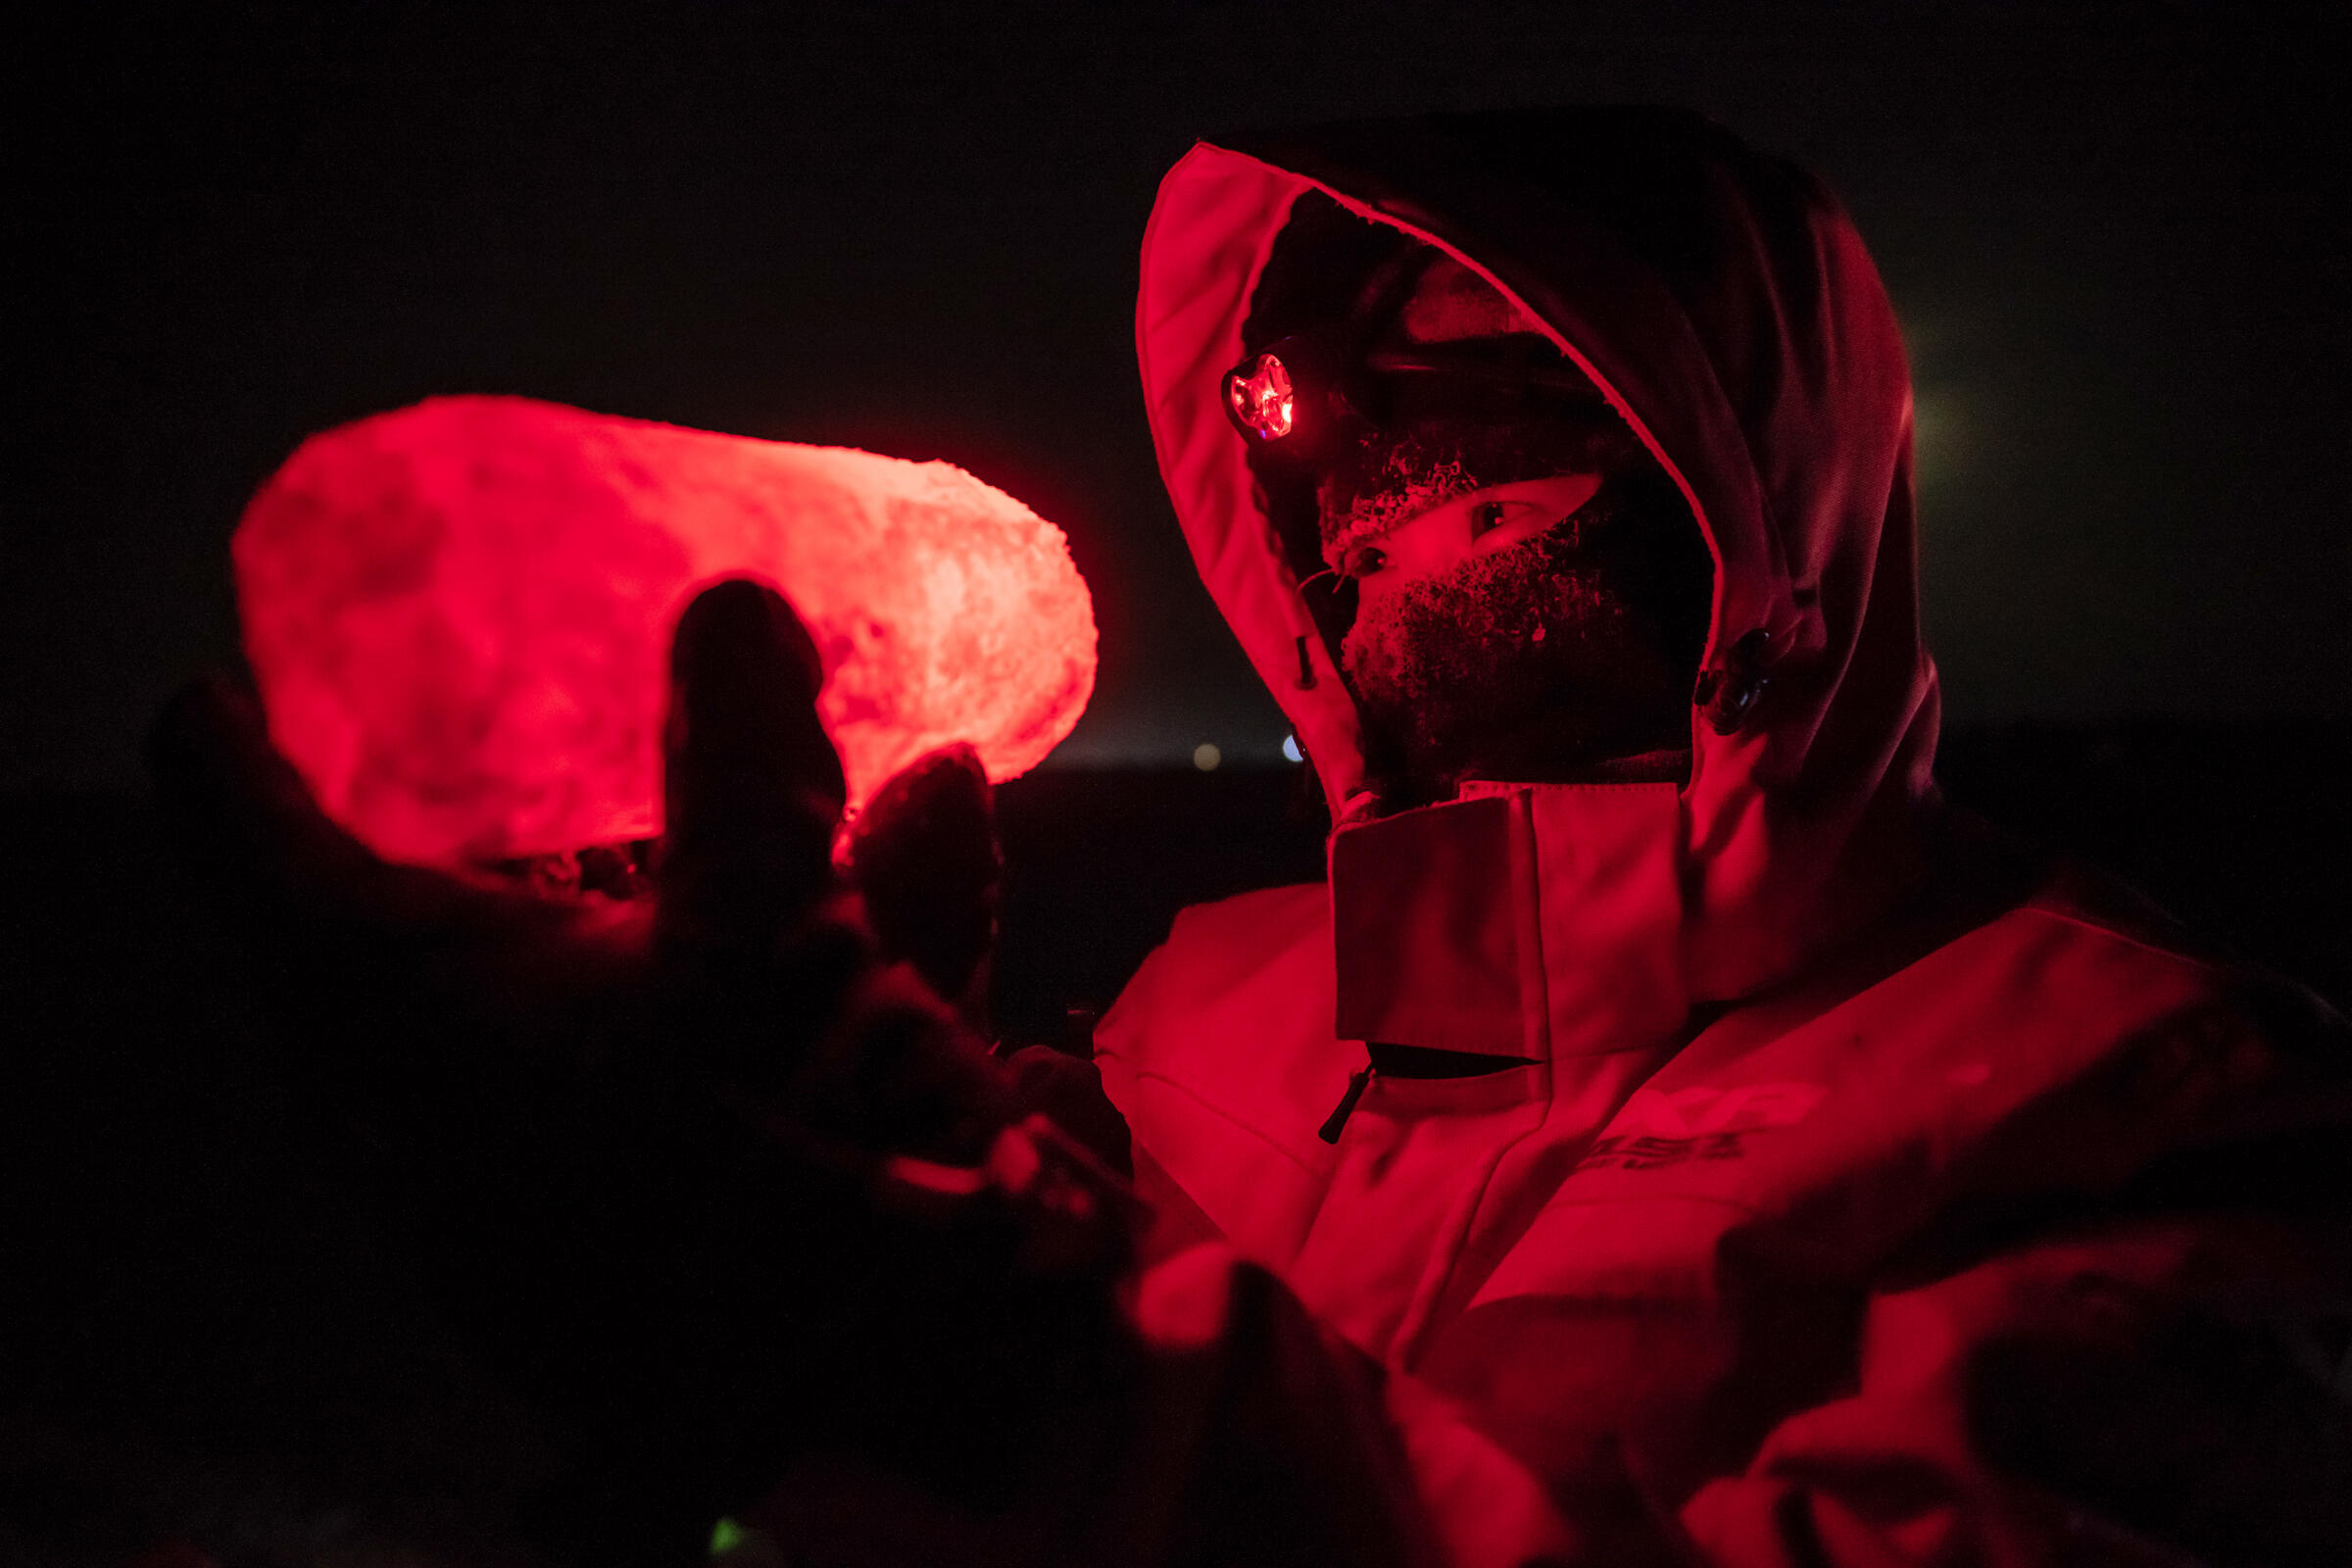 Allison Fong, an Alfred Wegener Institute biologist, inspects part of an ice core under red light. The red light is necessary so the scientists do not artificially stimulate microbes living in the ice. Esther Horvath